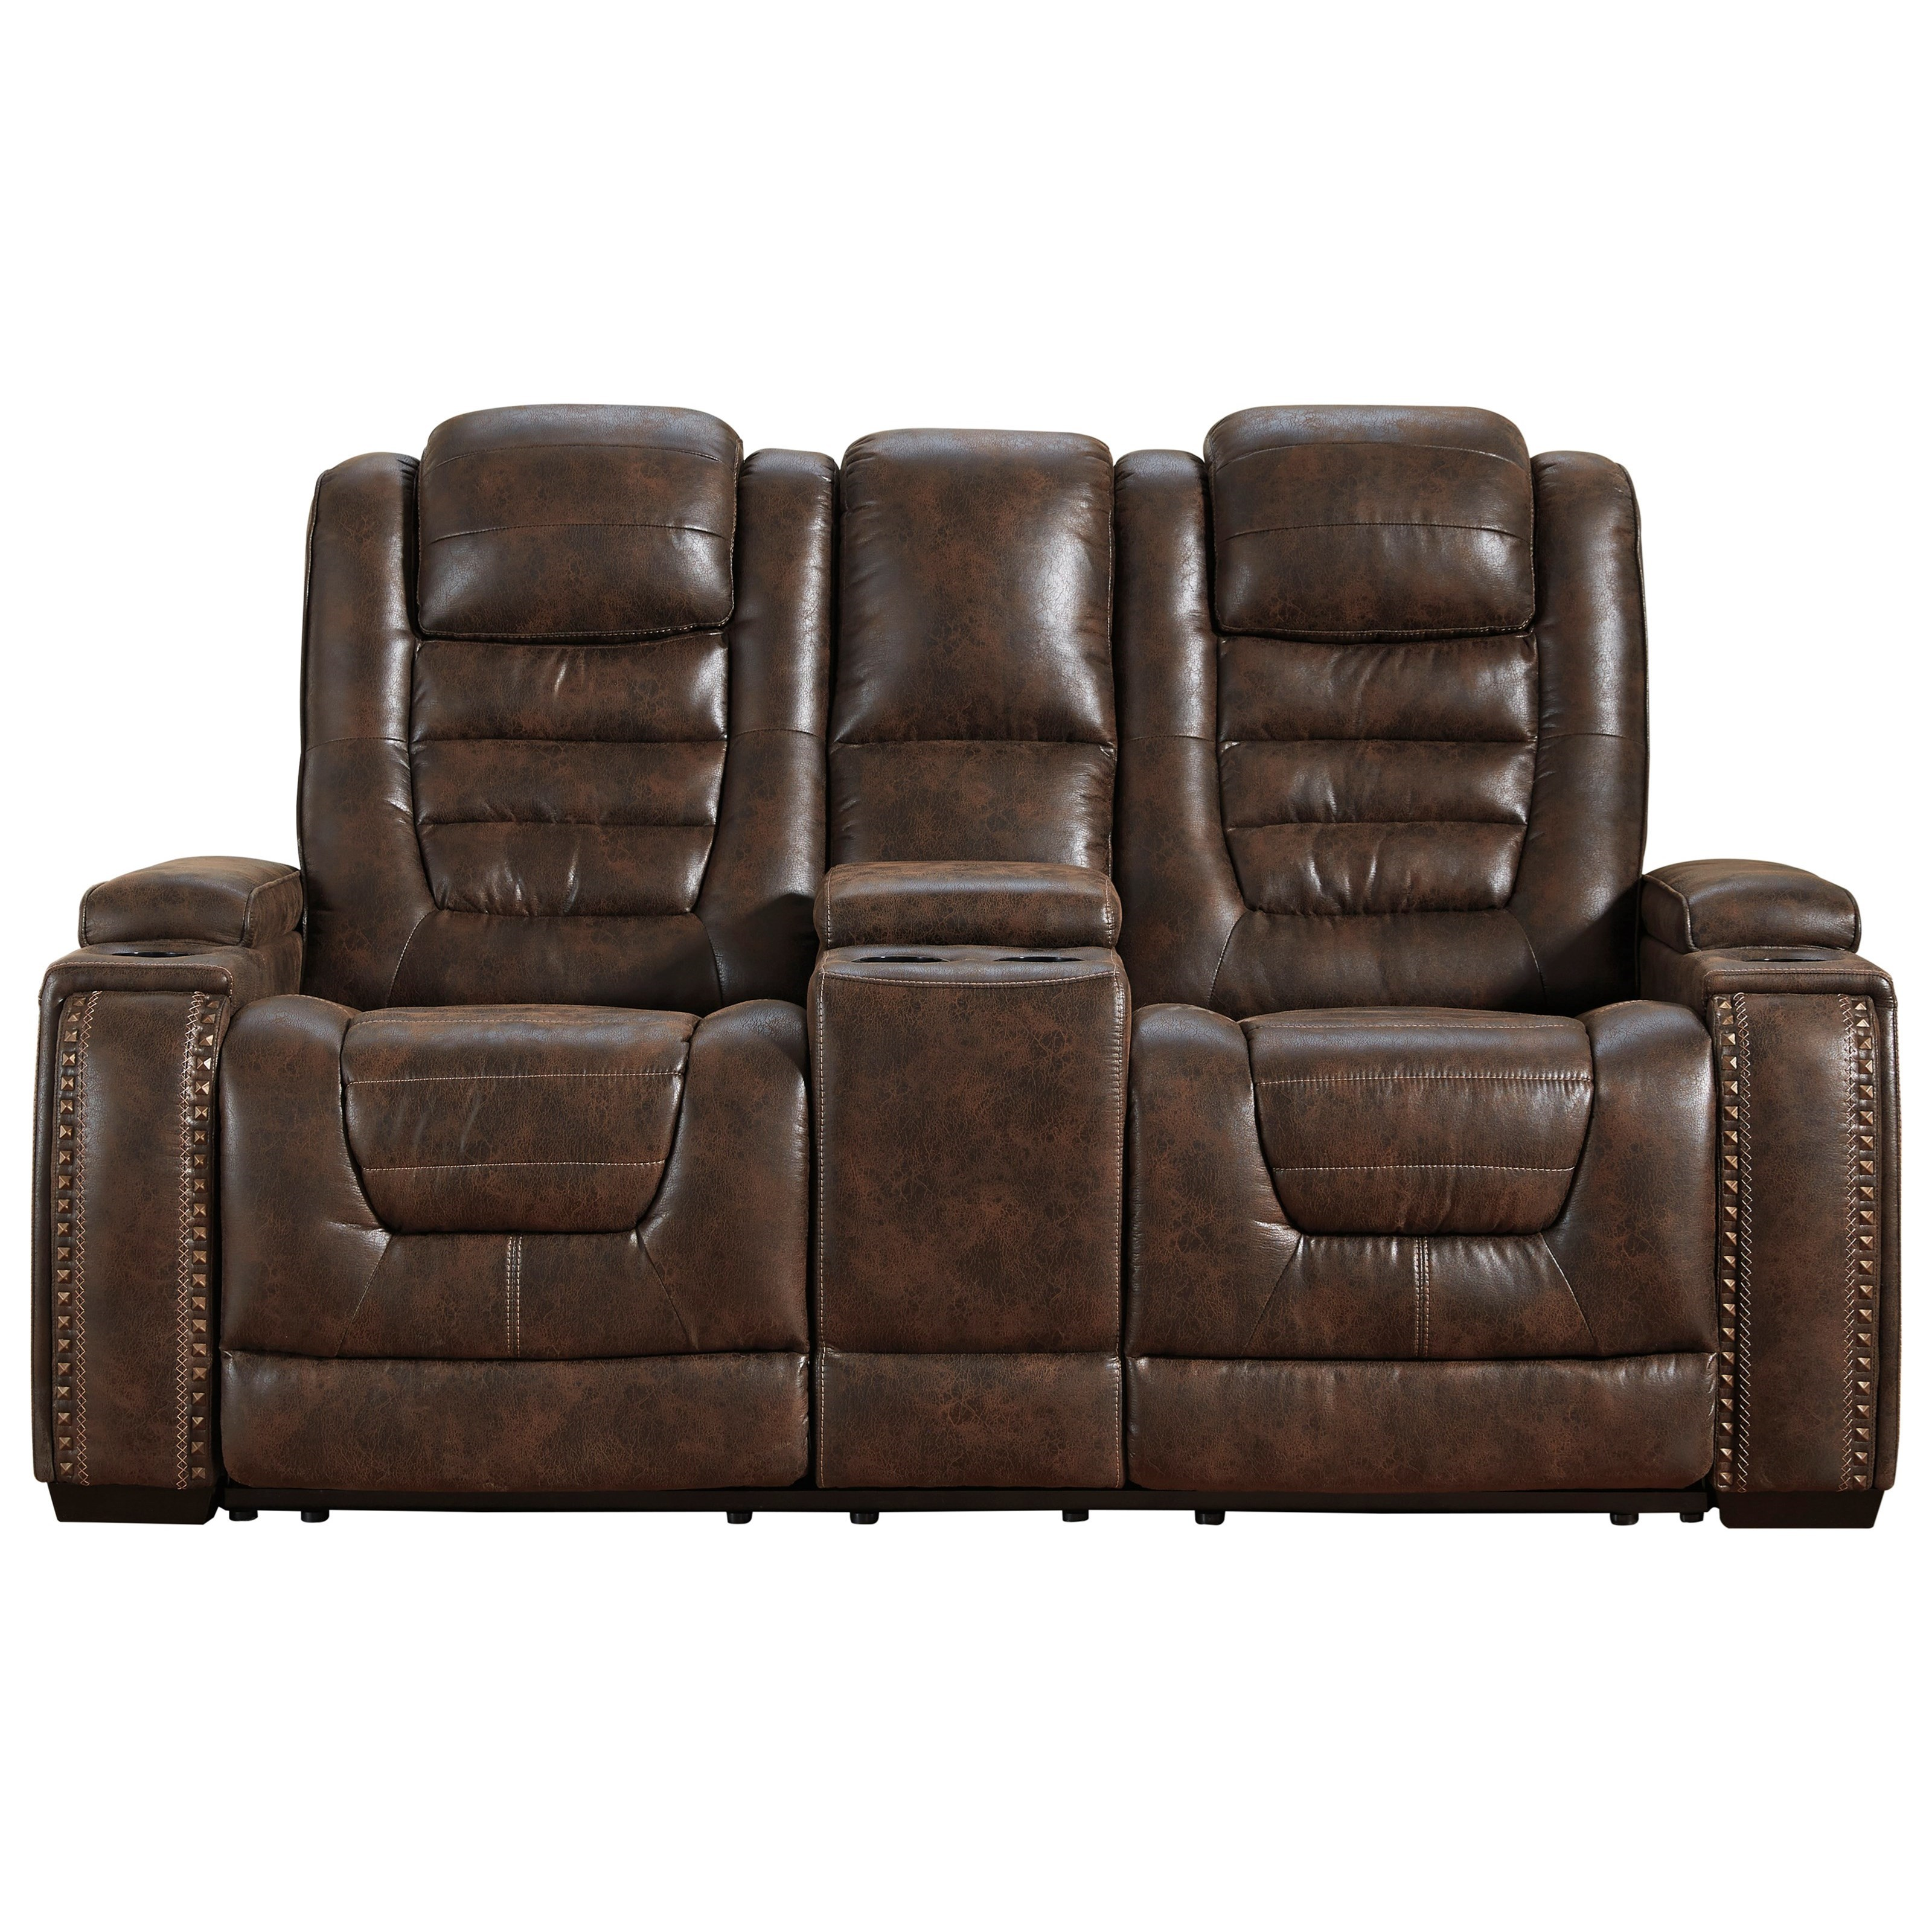 Game Zone Power Reclining Loveseat w/ Cnsl & Adj Hdrst by Signature Design by Ashley at Miller Waldrop Furniture and Decor